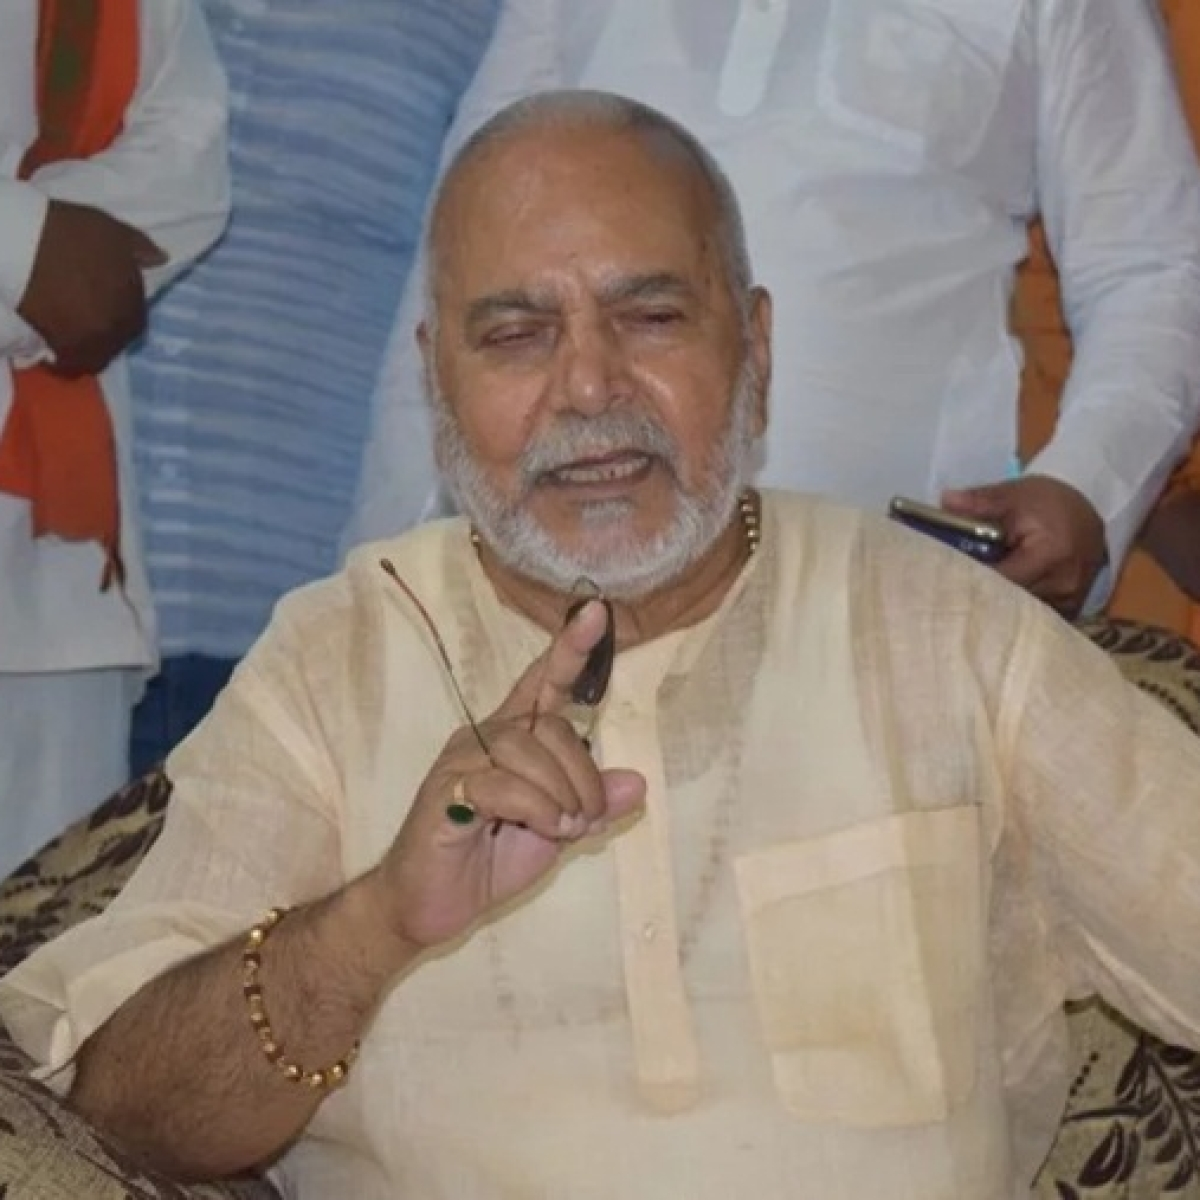 BJP leader Swami Chinmayanand arrested by UP SIT in Shahjahanpur rape case